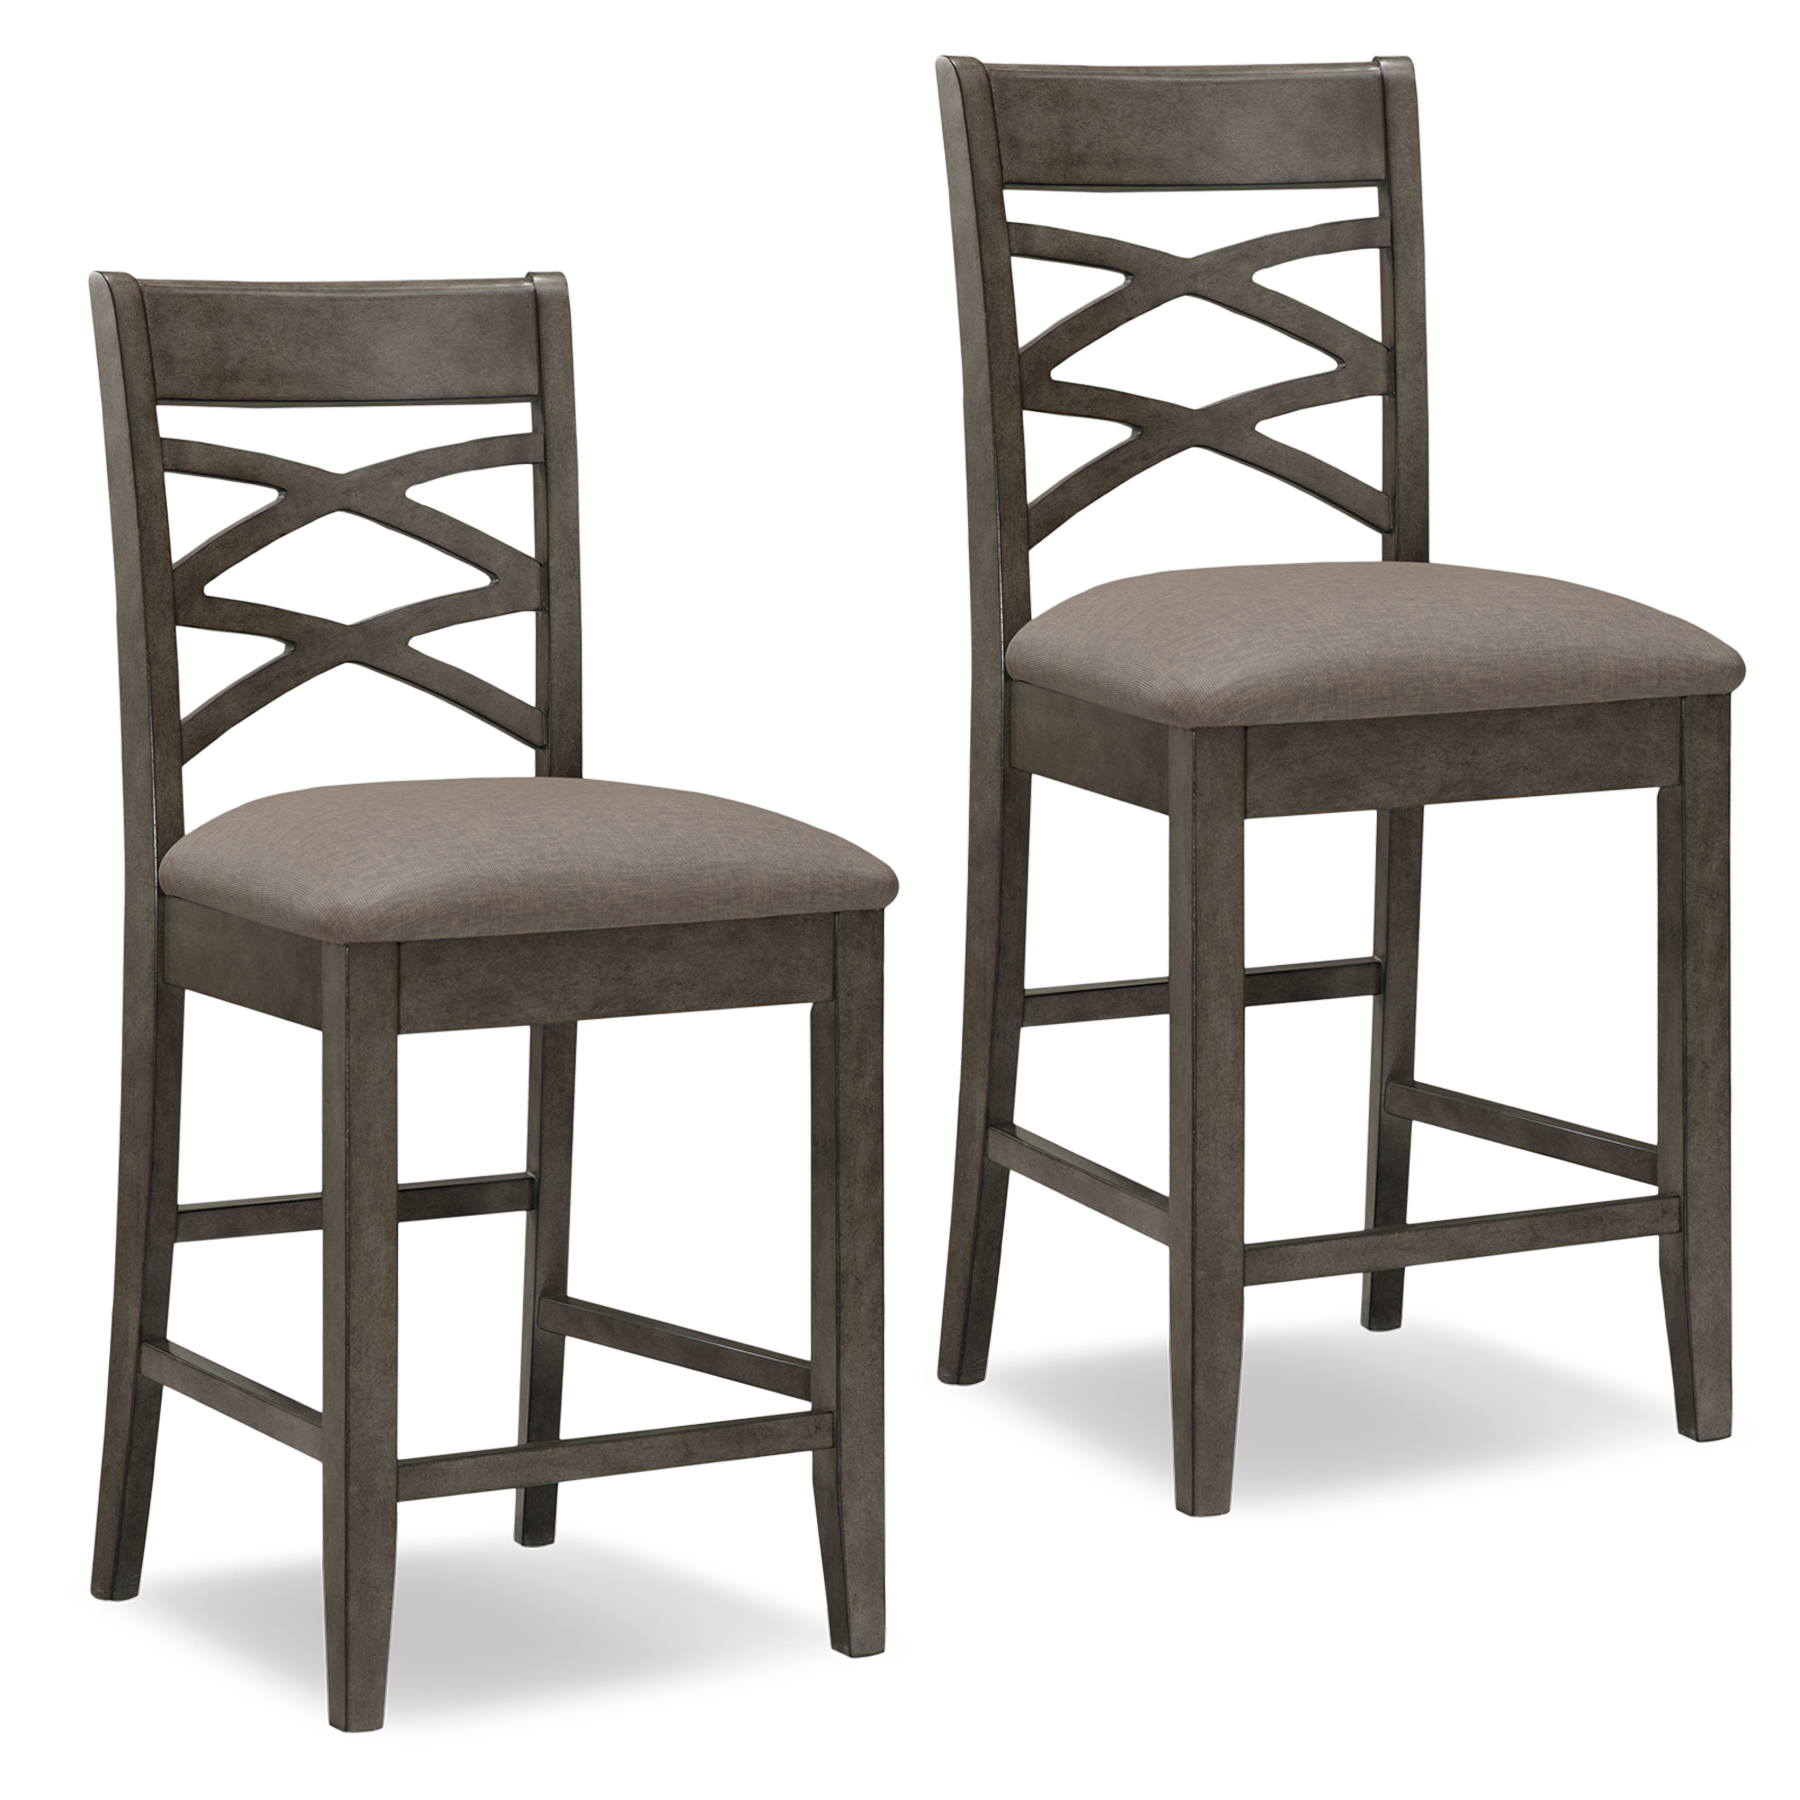 Leick Home Wood Double Crossback Counter Height Stool with Moss Heather Seat, Set of 2